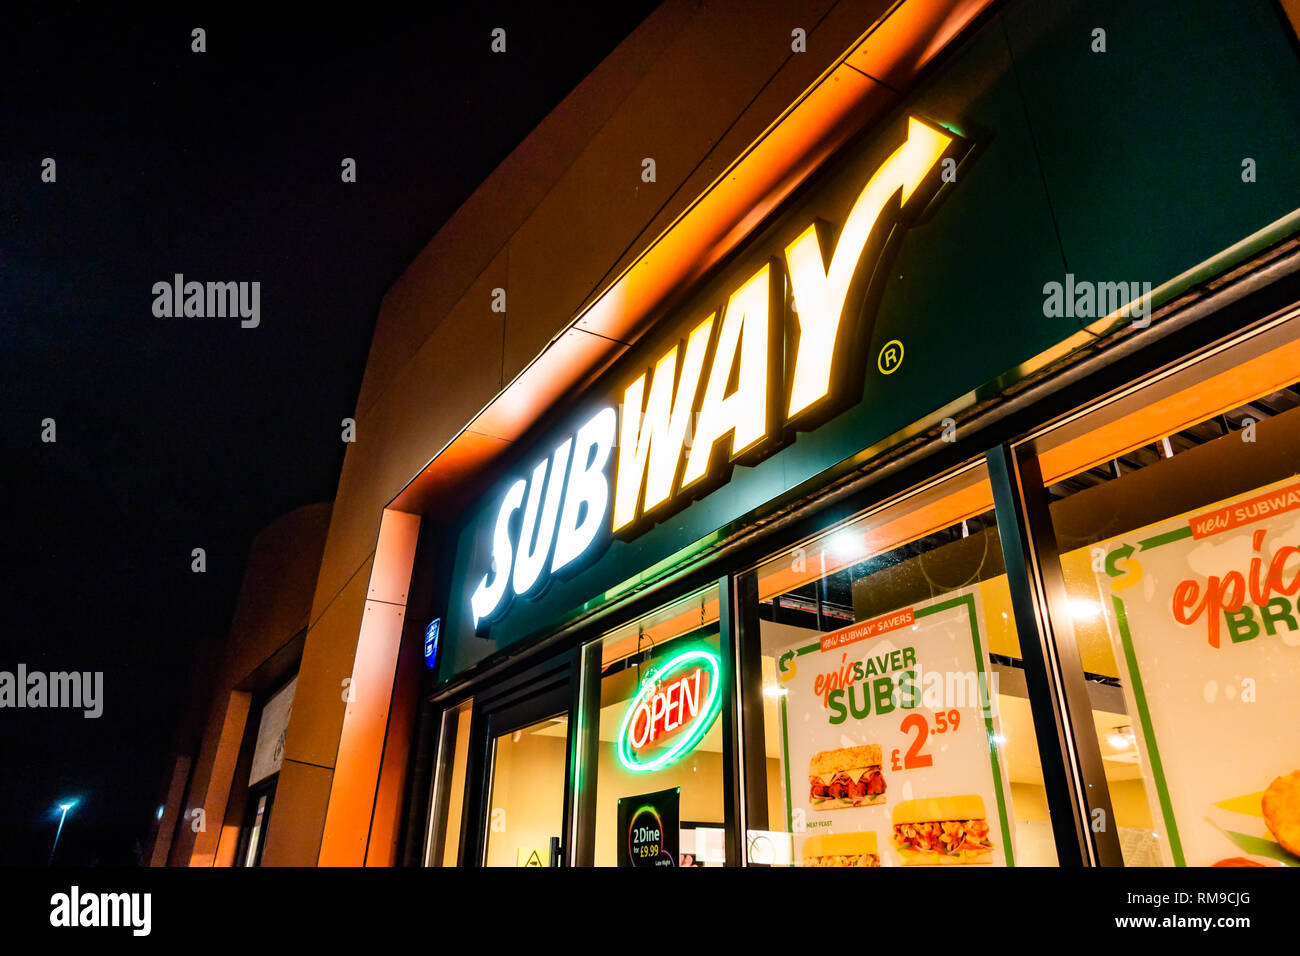 Shop Front Of Subway Open At Night The Illuminate Sign Of